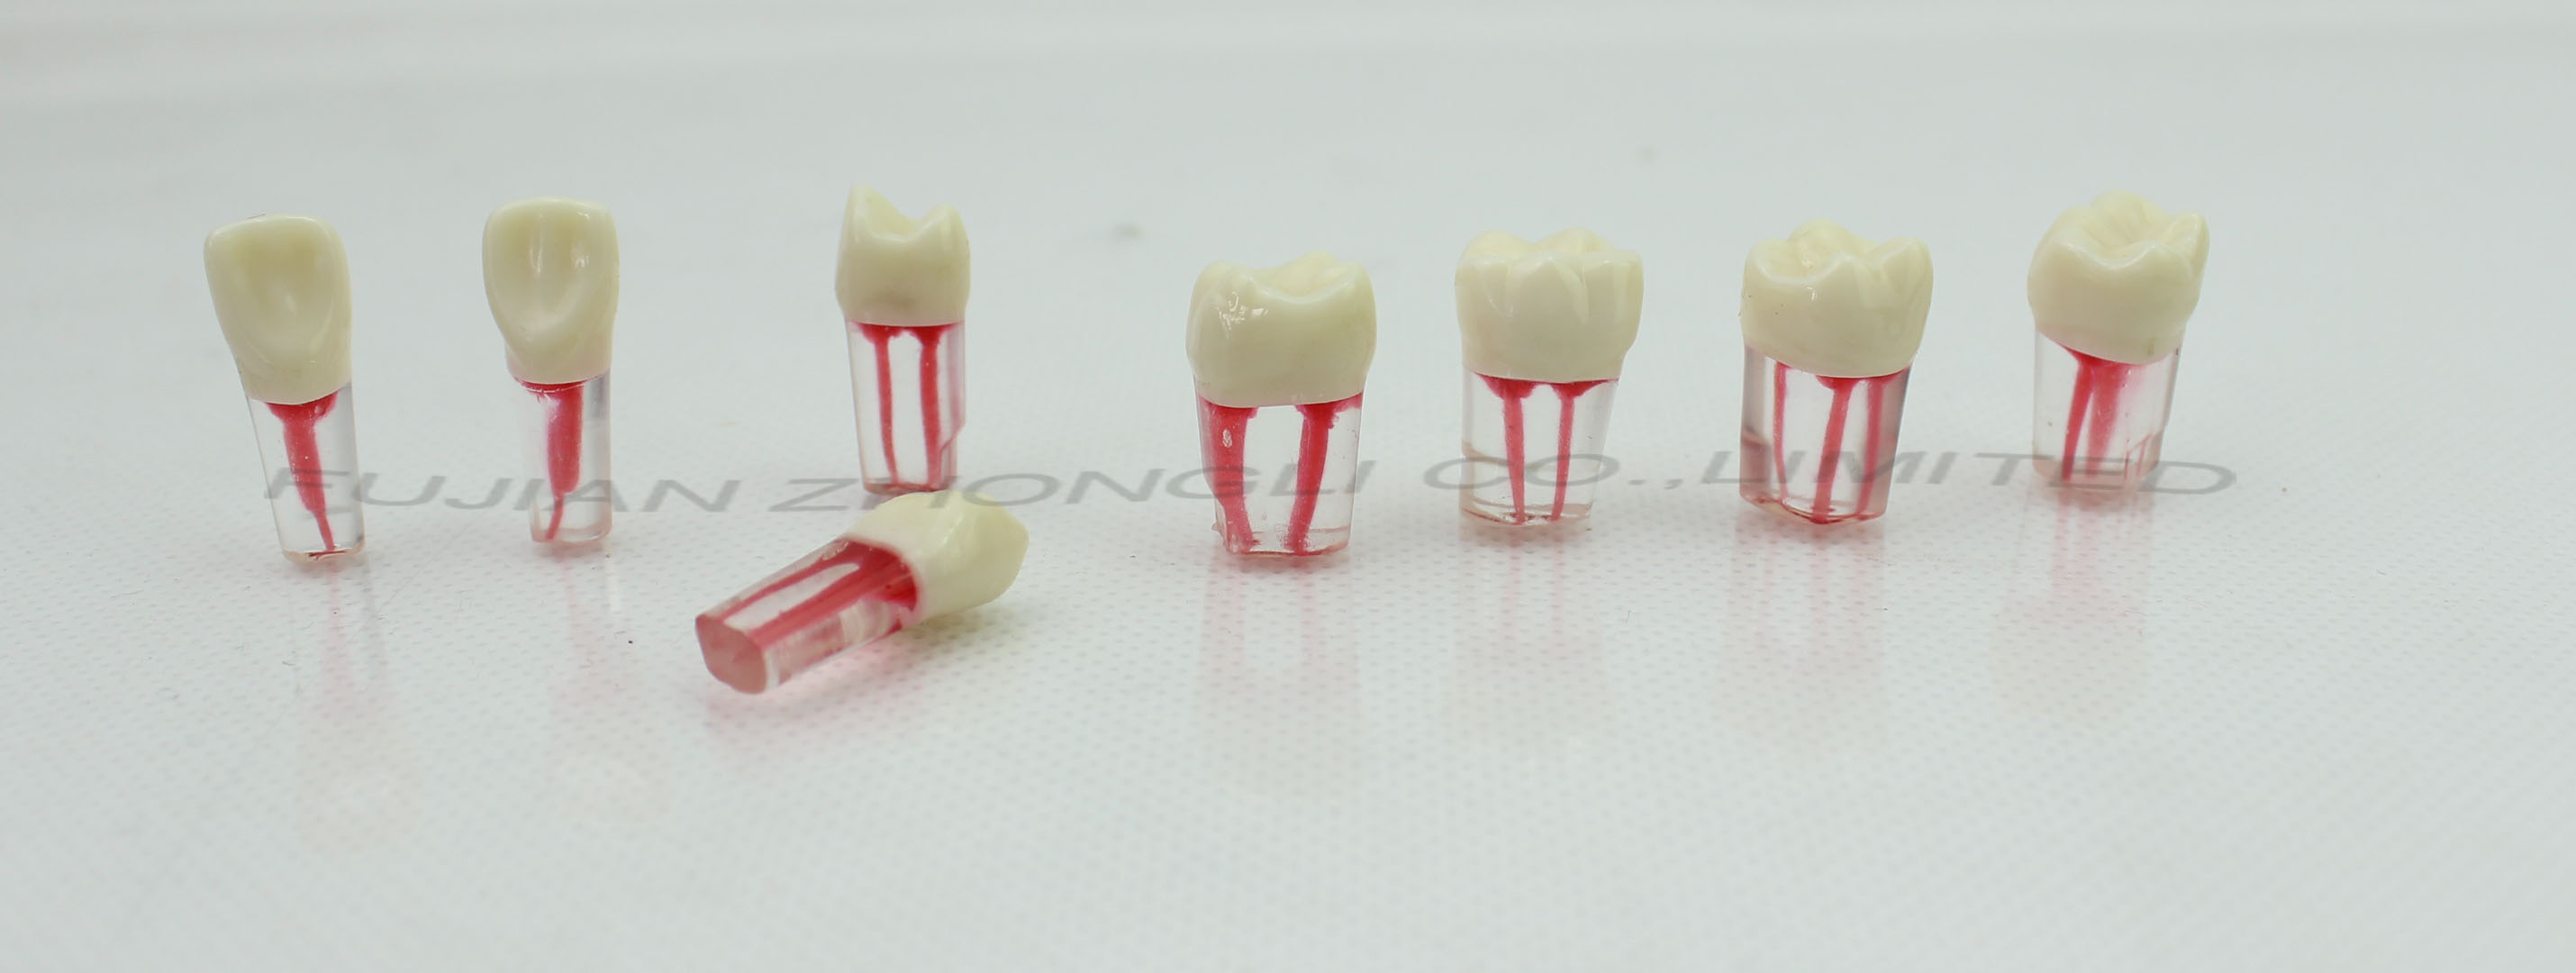 Root canal model S12